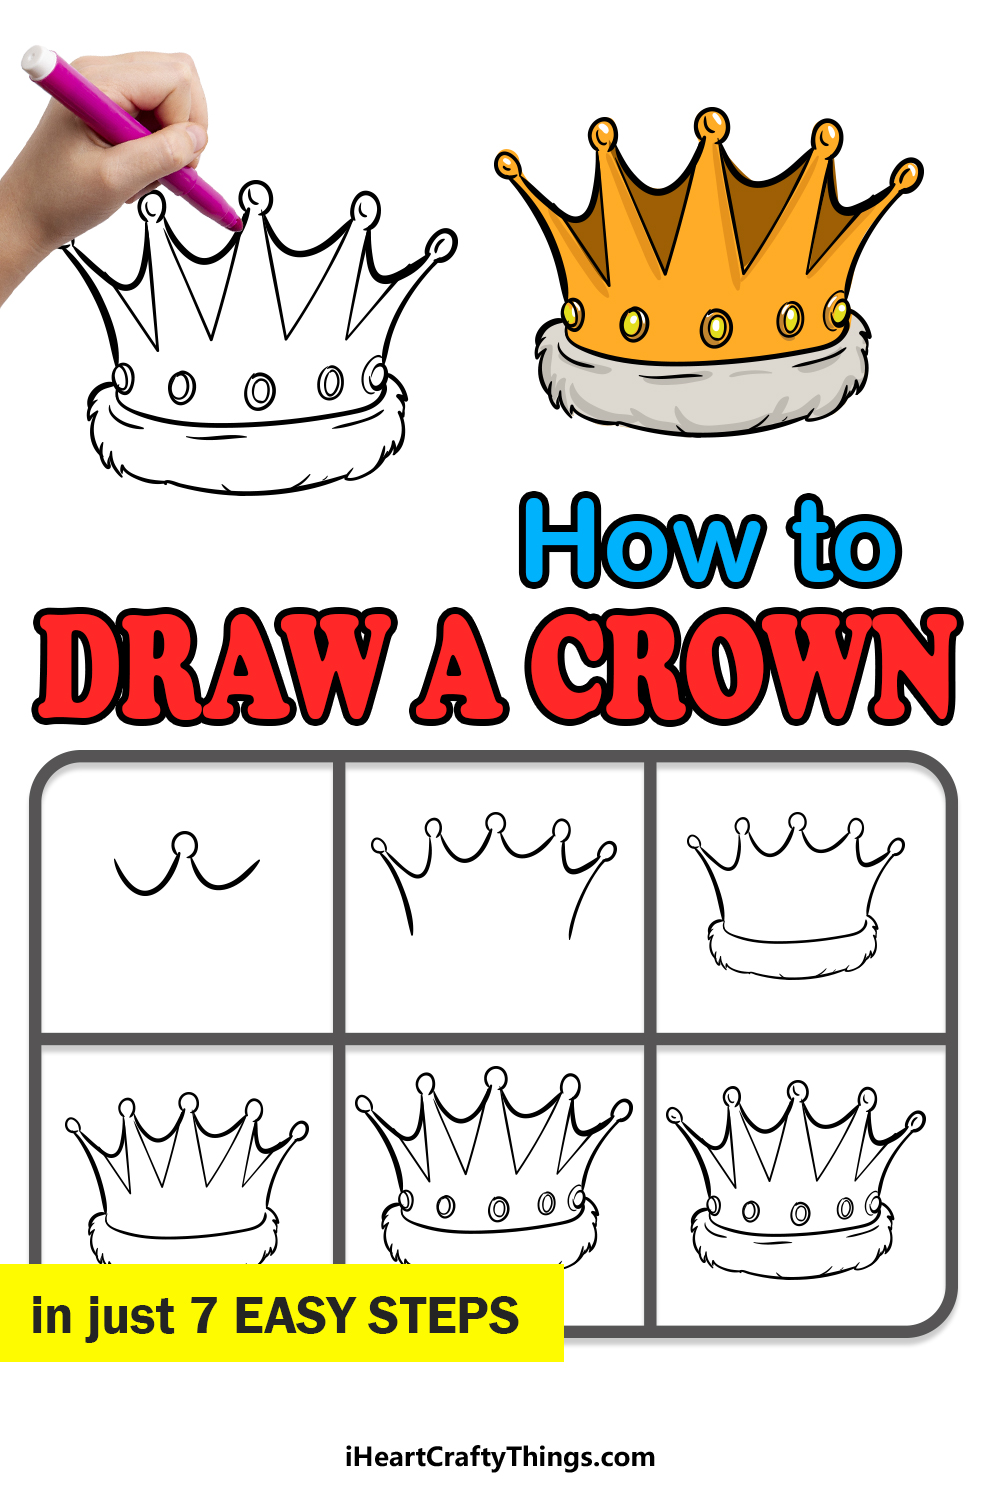 how to draw a crown in 7 easy steps